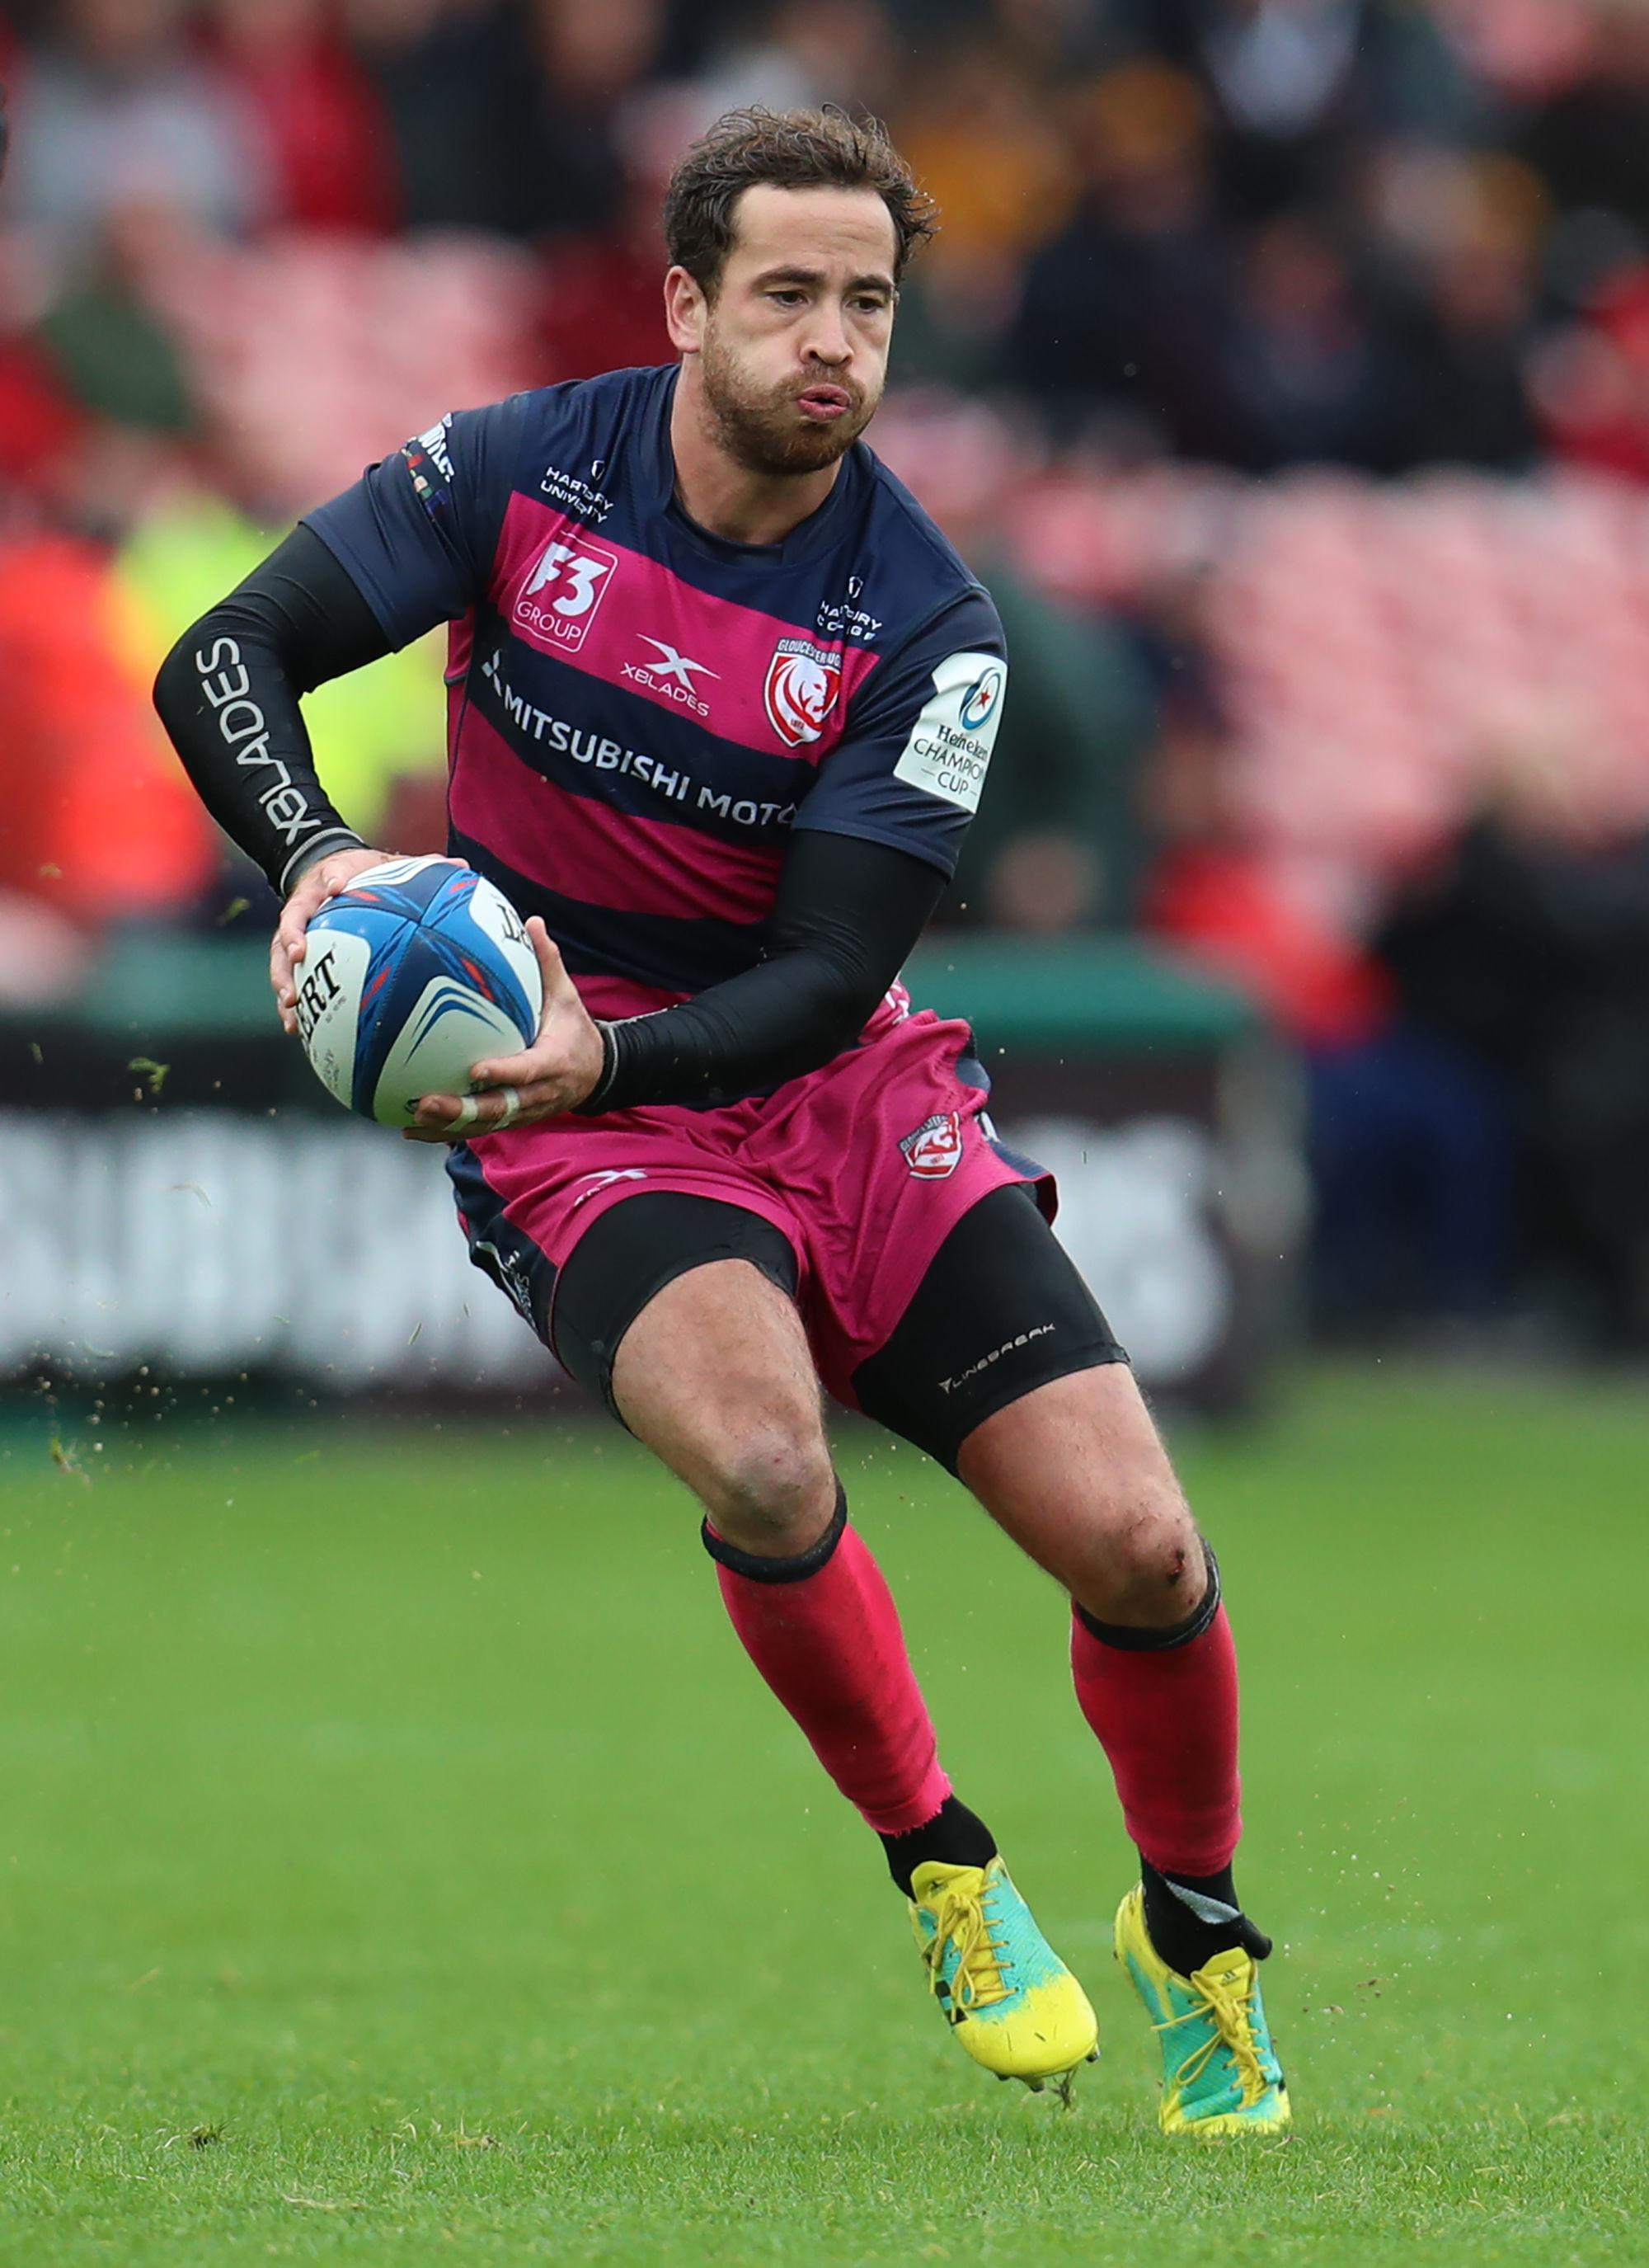 Danny Cipriani is back For Gloucester after tearing a pec muscle